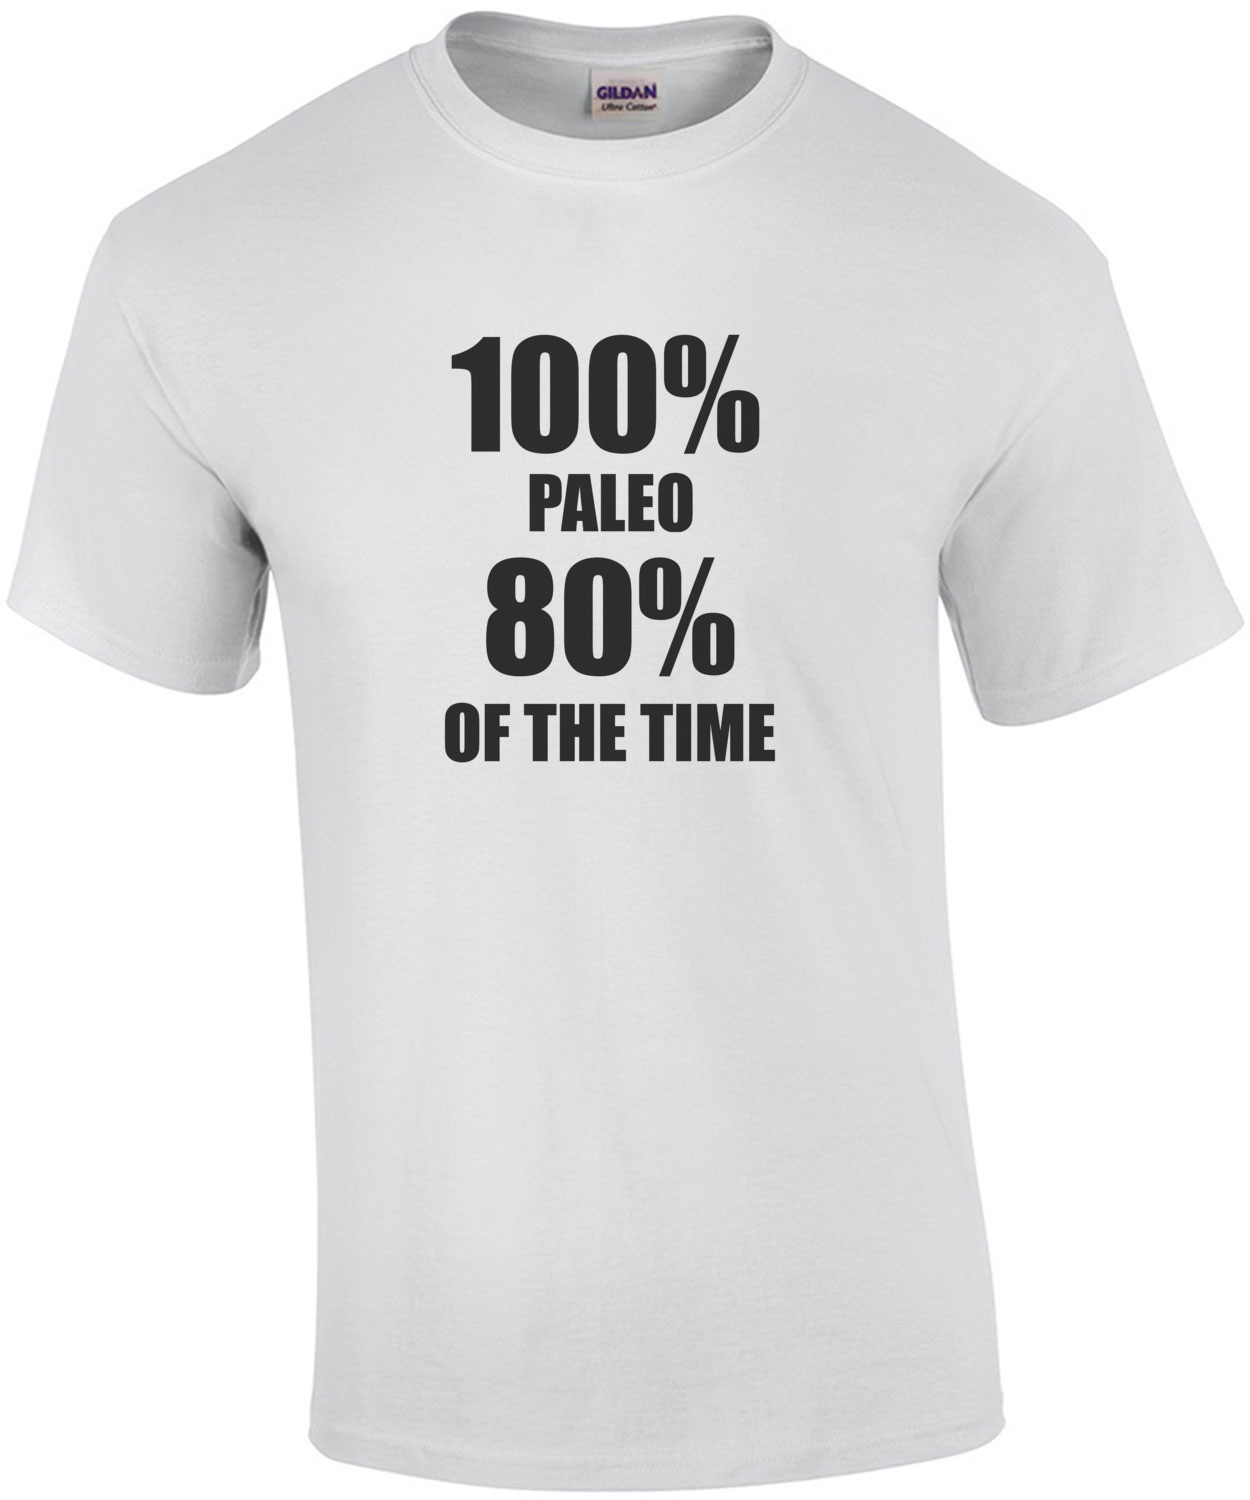 100% PALEO 80% OF THE TIME T-Shirt T-Shirt